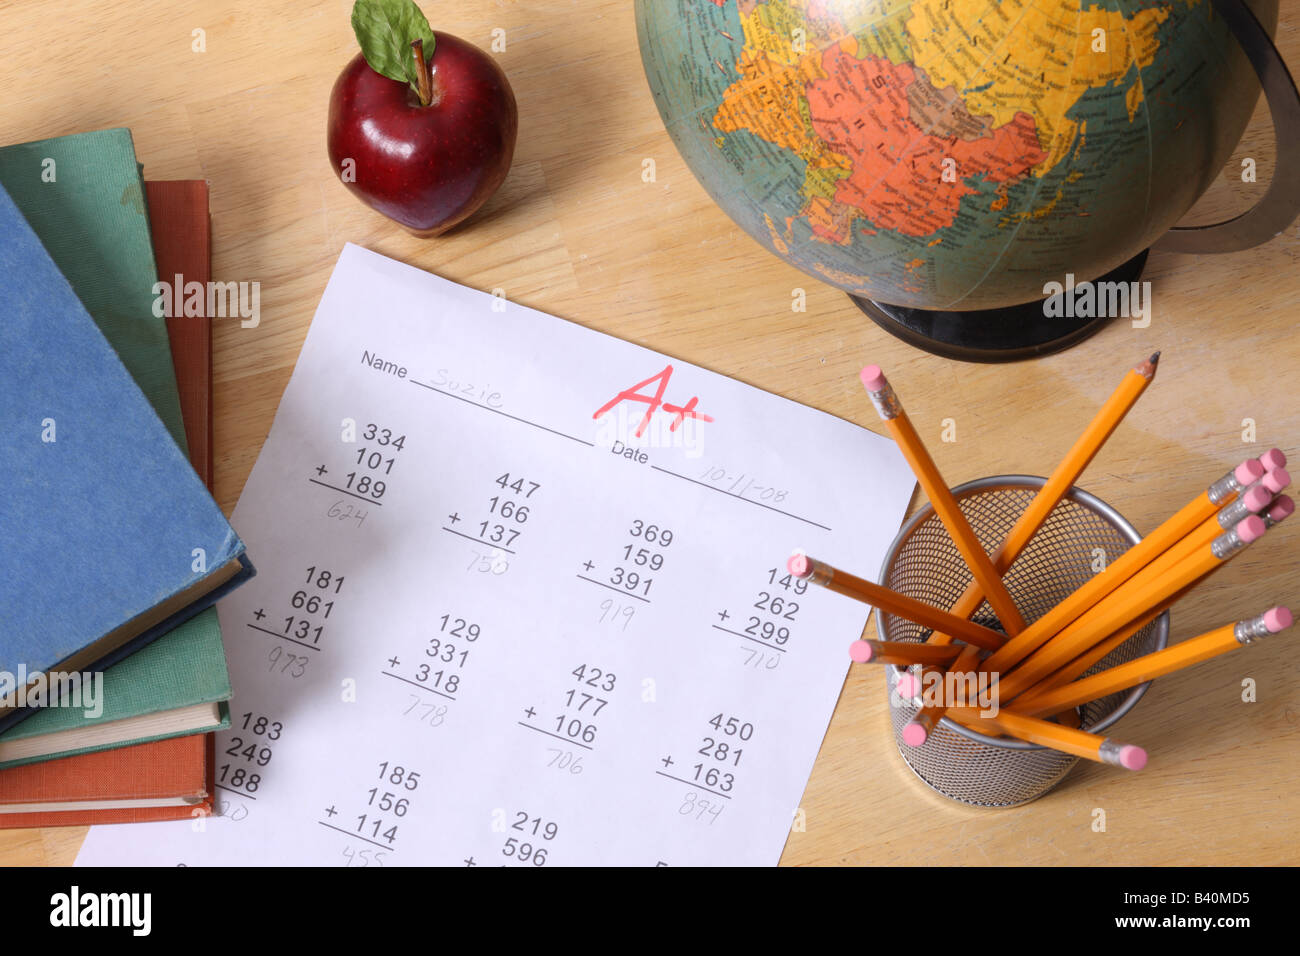 School education still life with books globe apple pencils and a paper with A grade - Stock Image